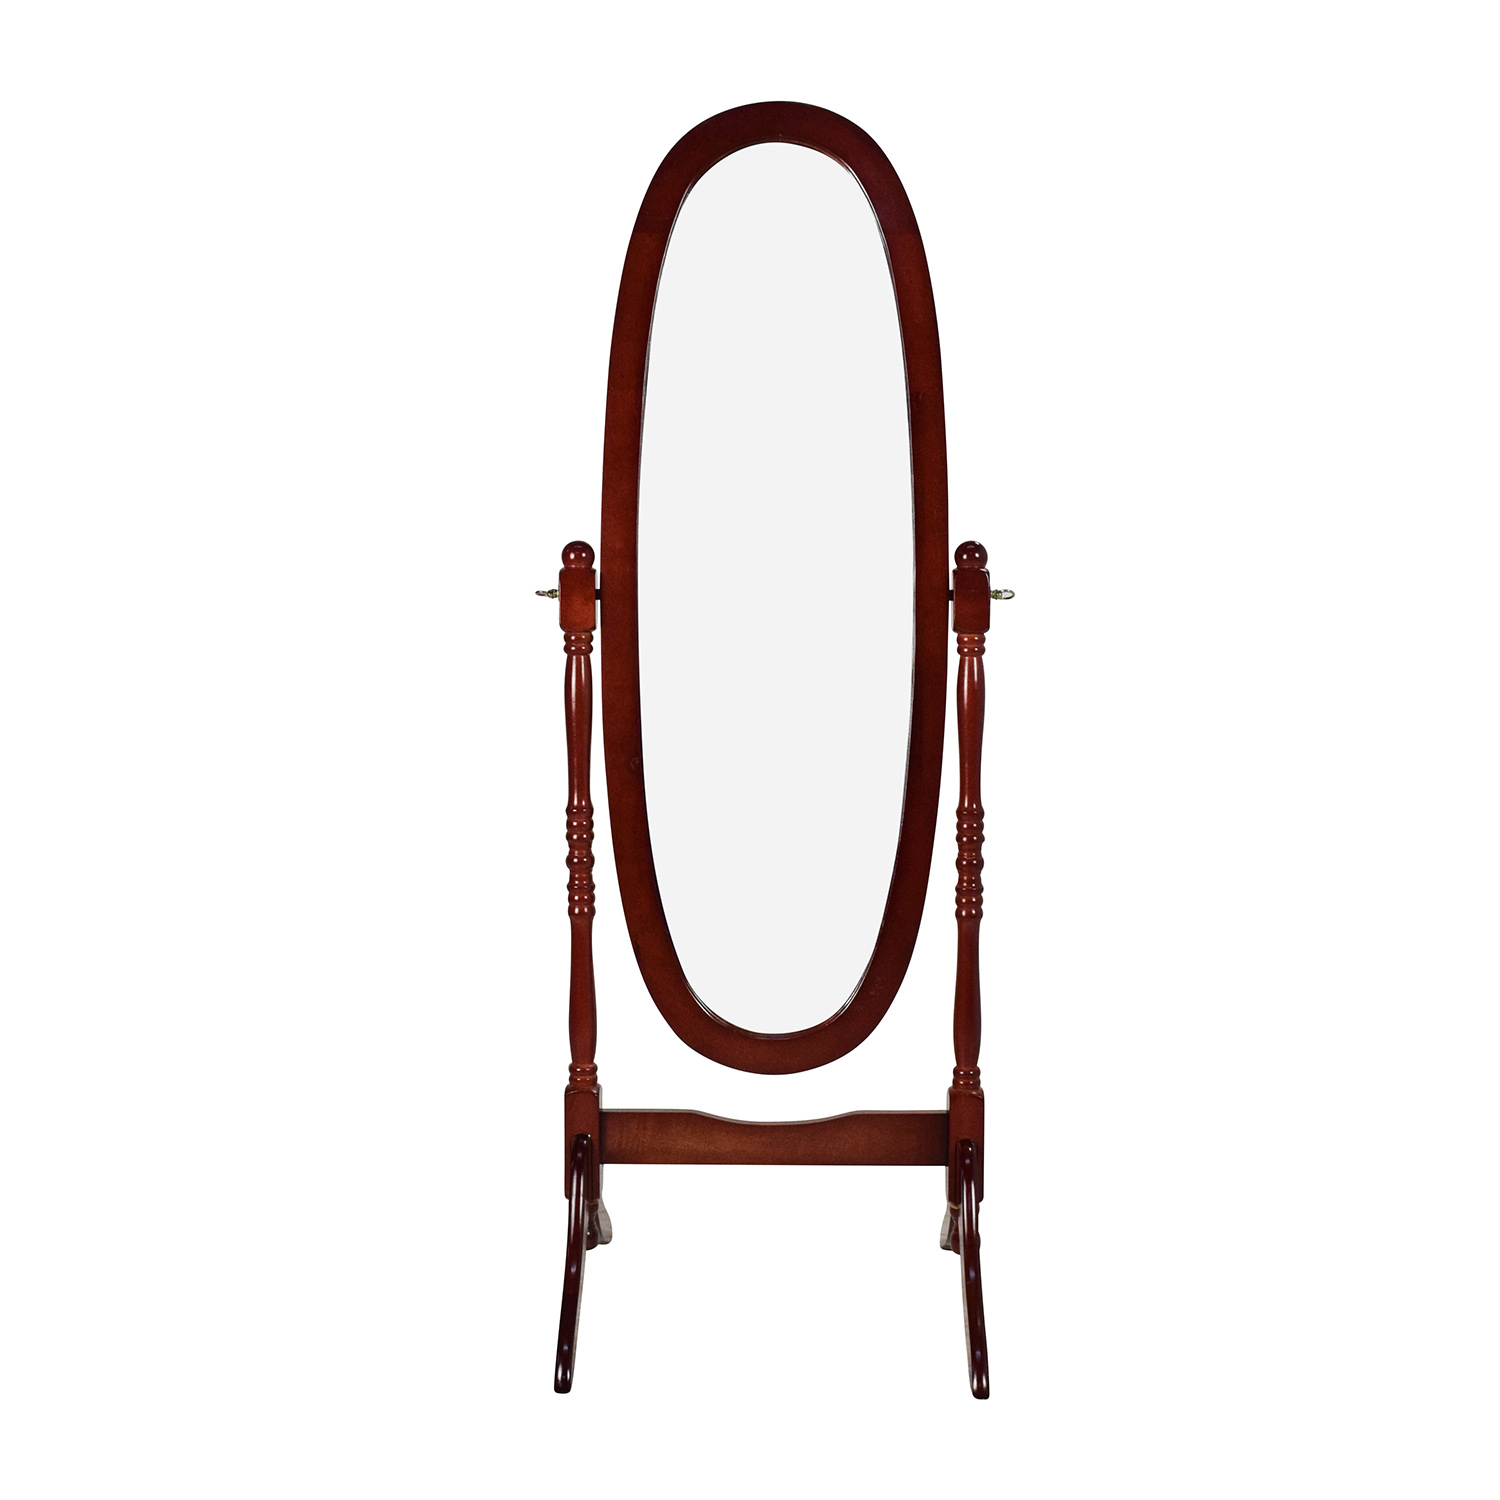 Large Wooden Frame Mirror dimensions